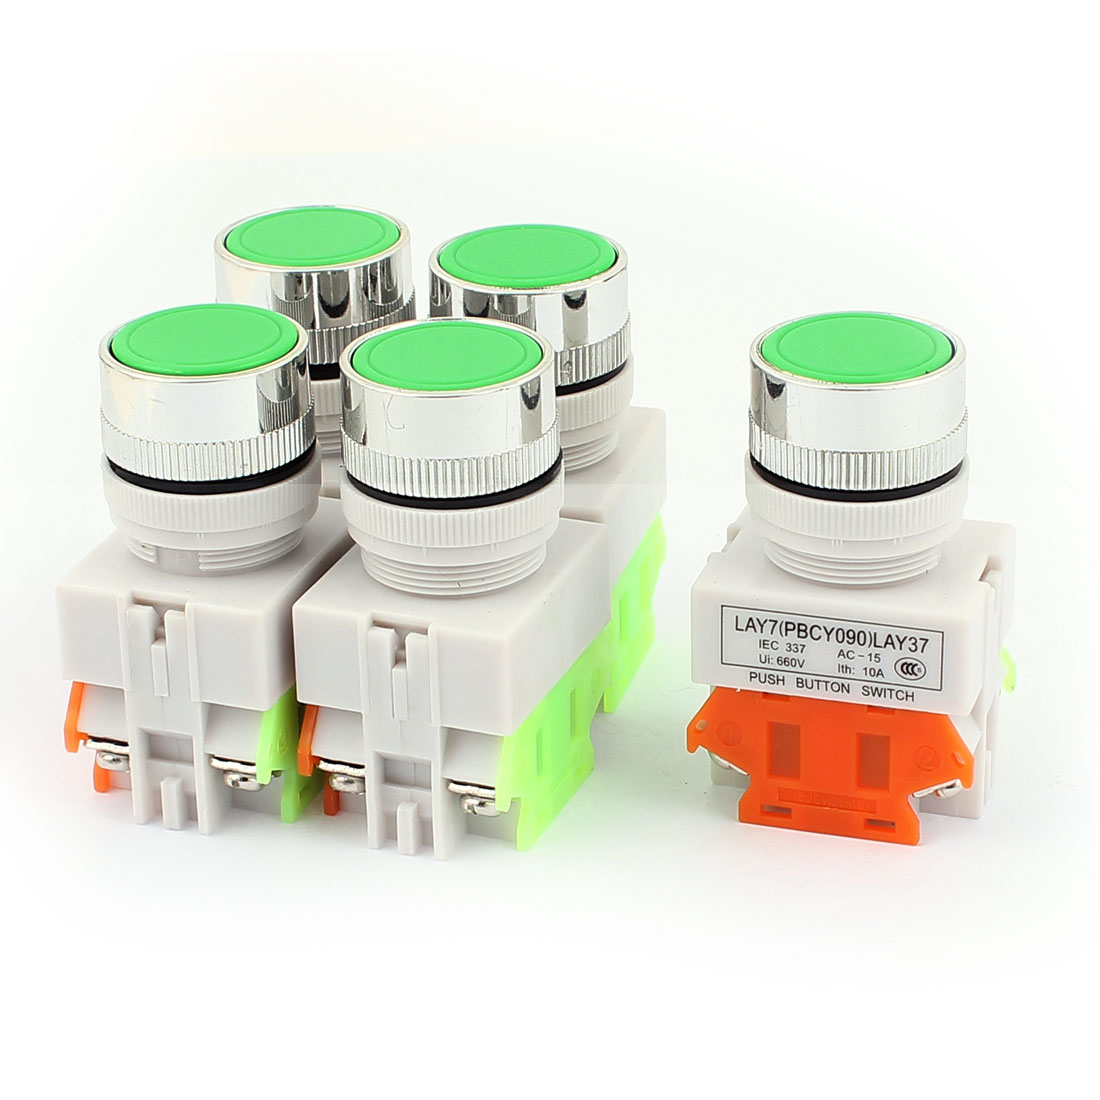 5PCS AC 660V 10A 1NO 1NC DPST 4 Terminals Momentary Push Button Switch